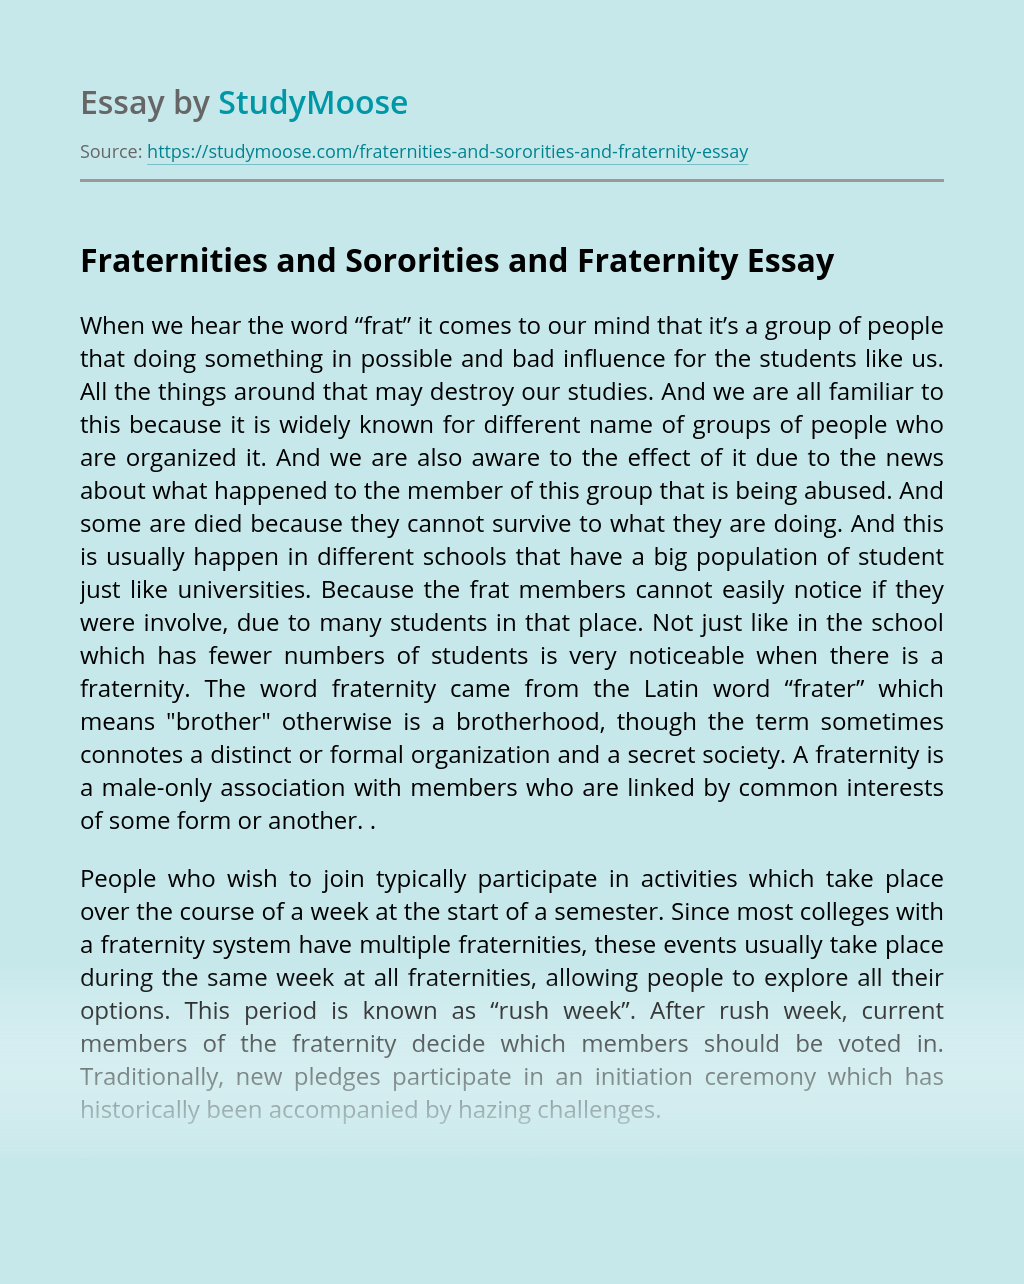 Fraternities and Sororities and Fraternity